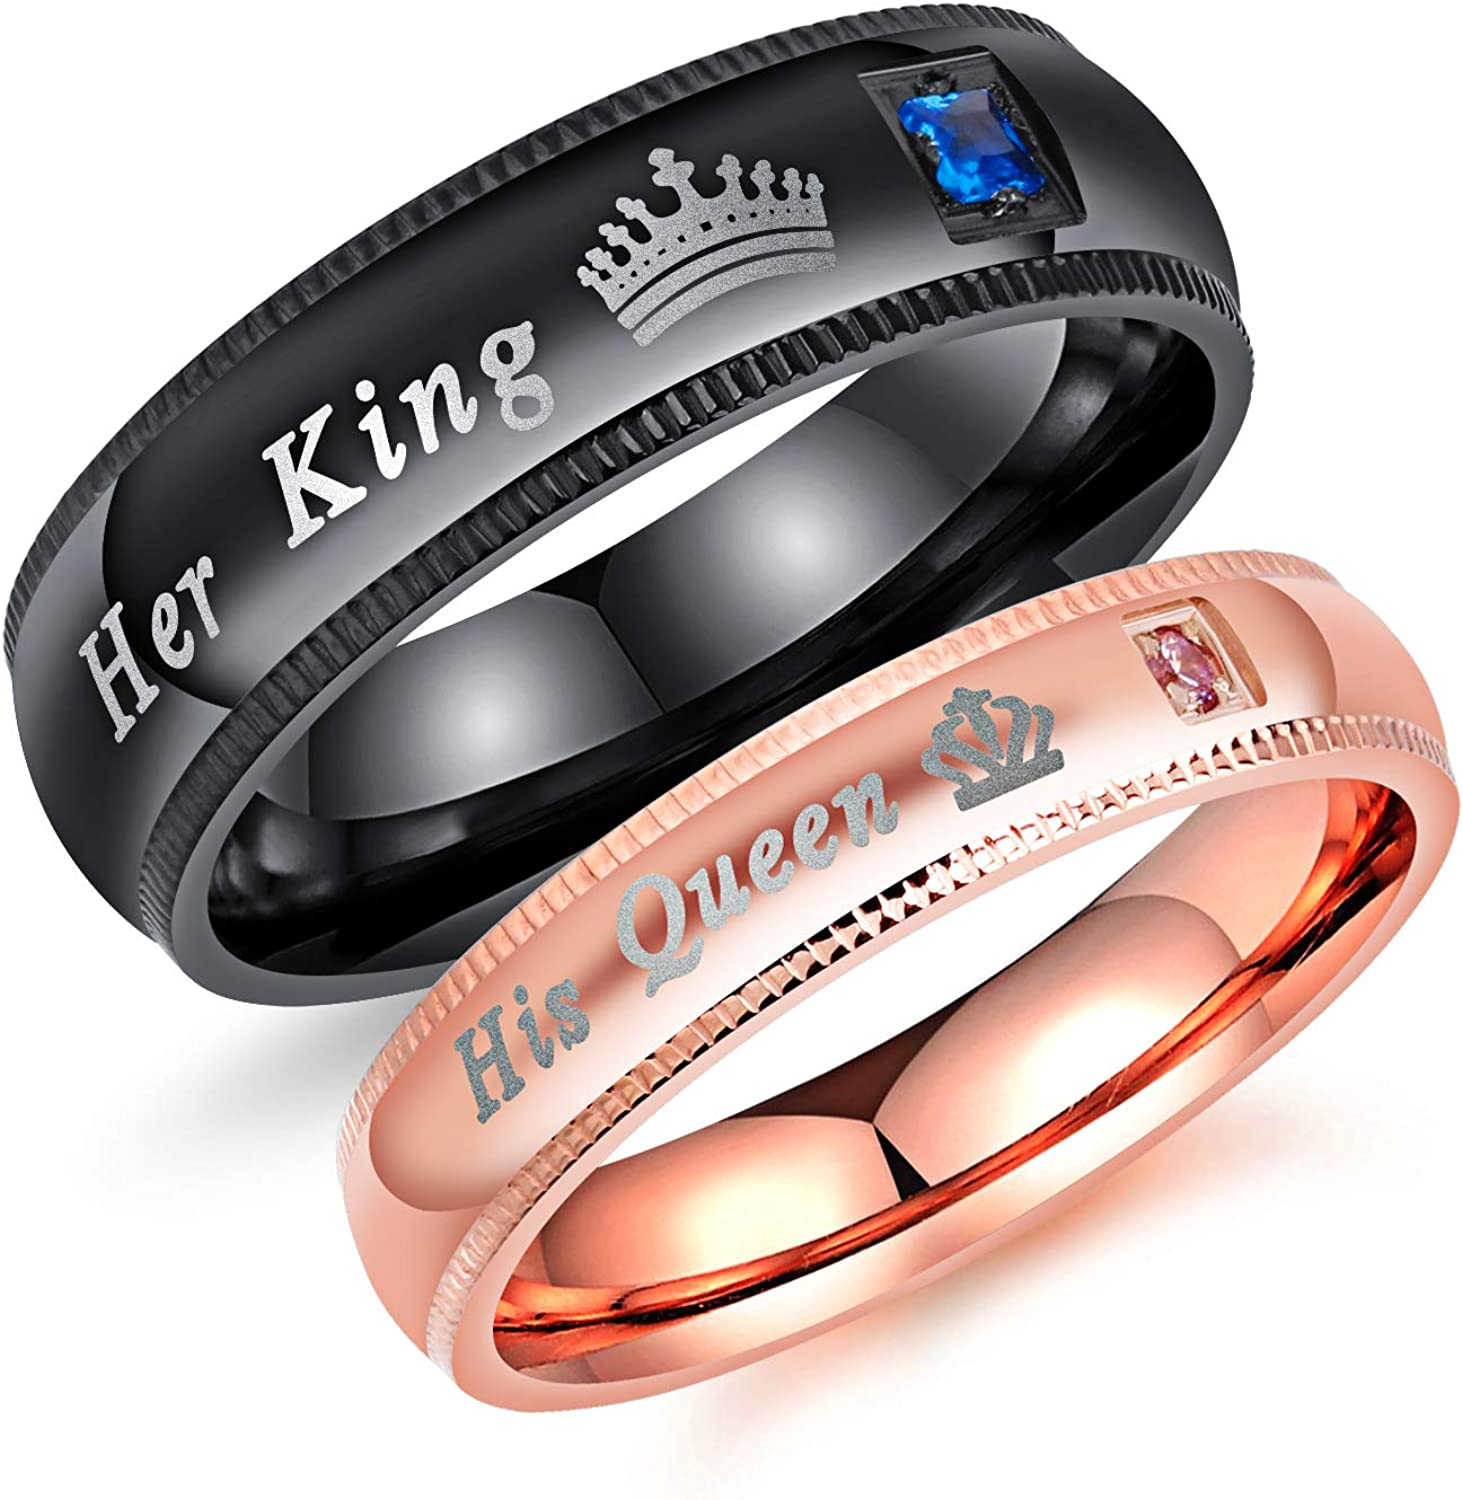 Stainless Steel His and Her Couples Rings Set His Queen Her King Wedding Engagement Anniversary Band Promise Rings Jewelry for Christmas Birthday